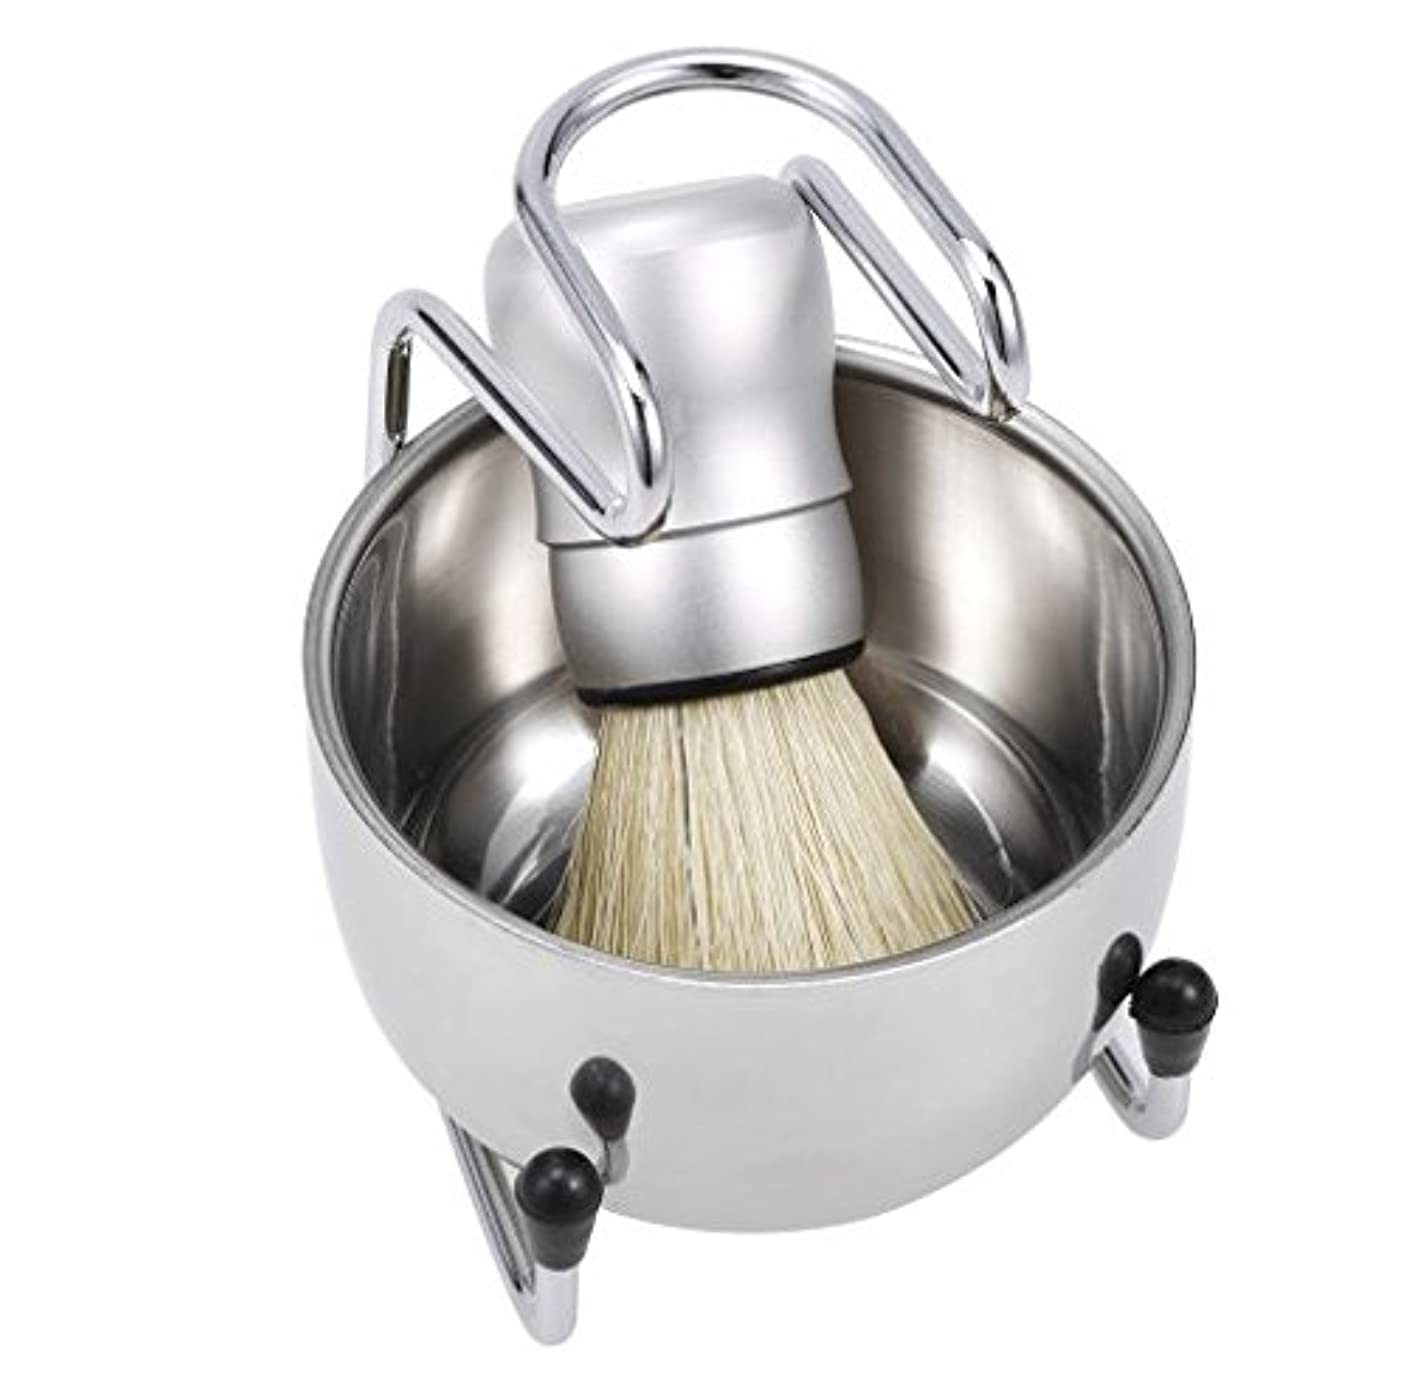 モナリザピケ死すべき3 in 1 Men's Shaving Tools Set Well Polished Shaving Brush Soap Bowl Stand Holder Badger Hair Male Face Cleaning